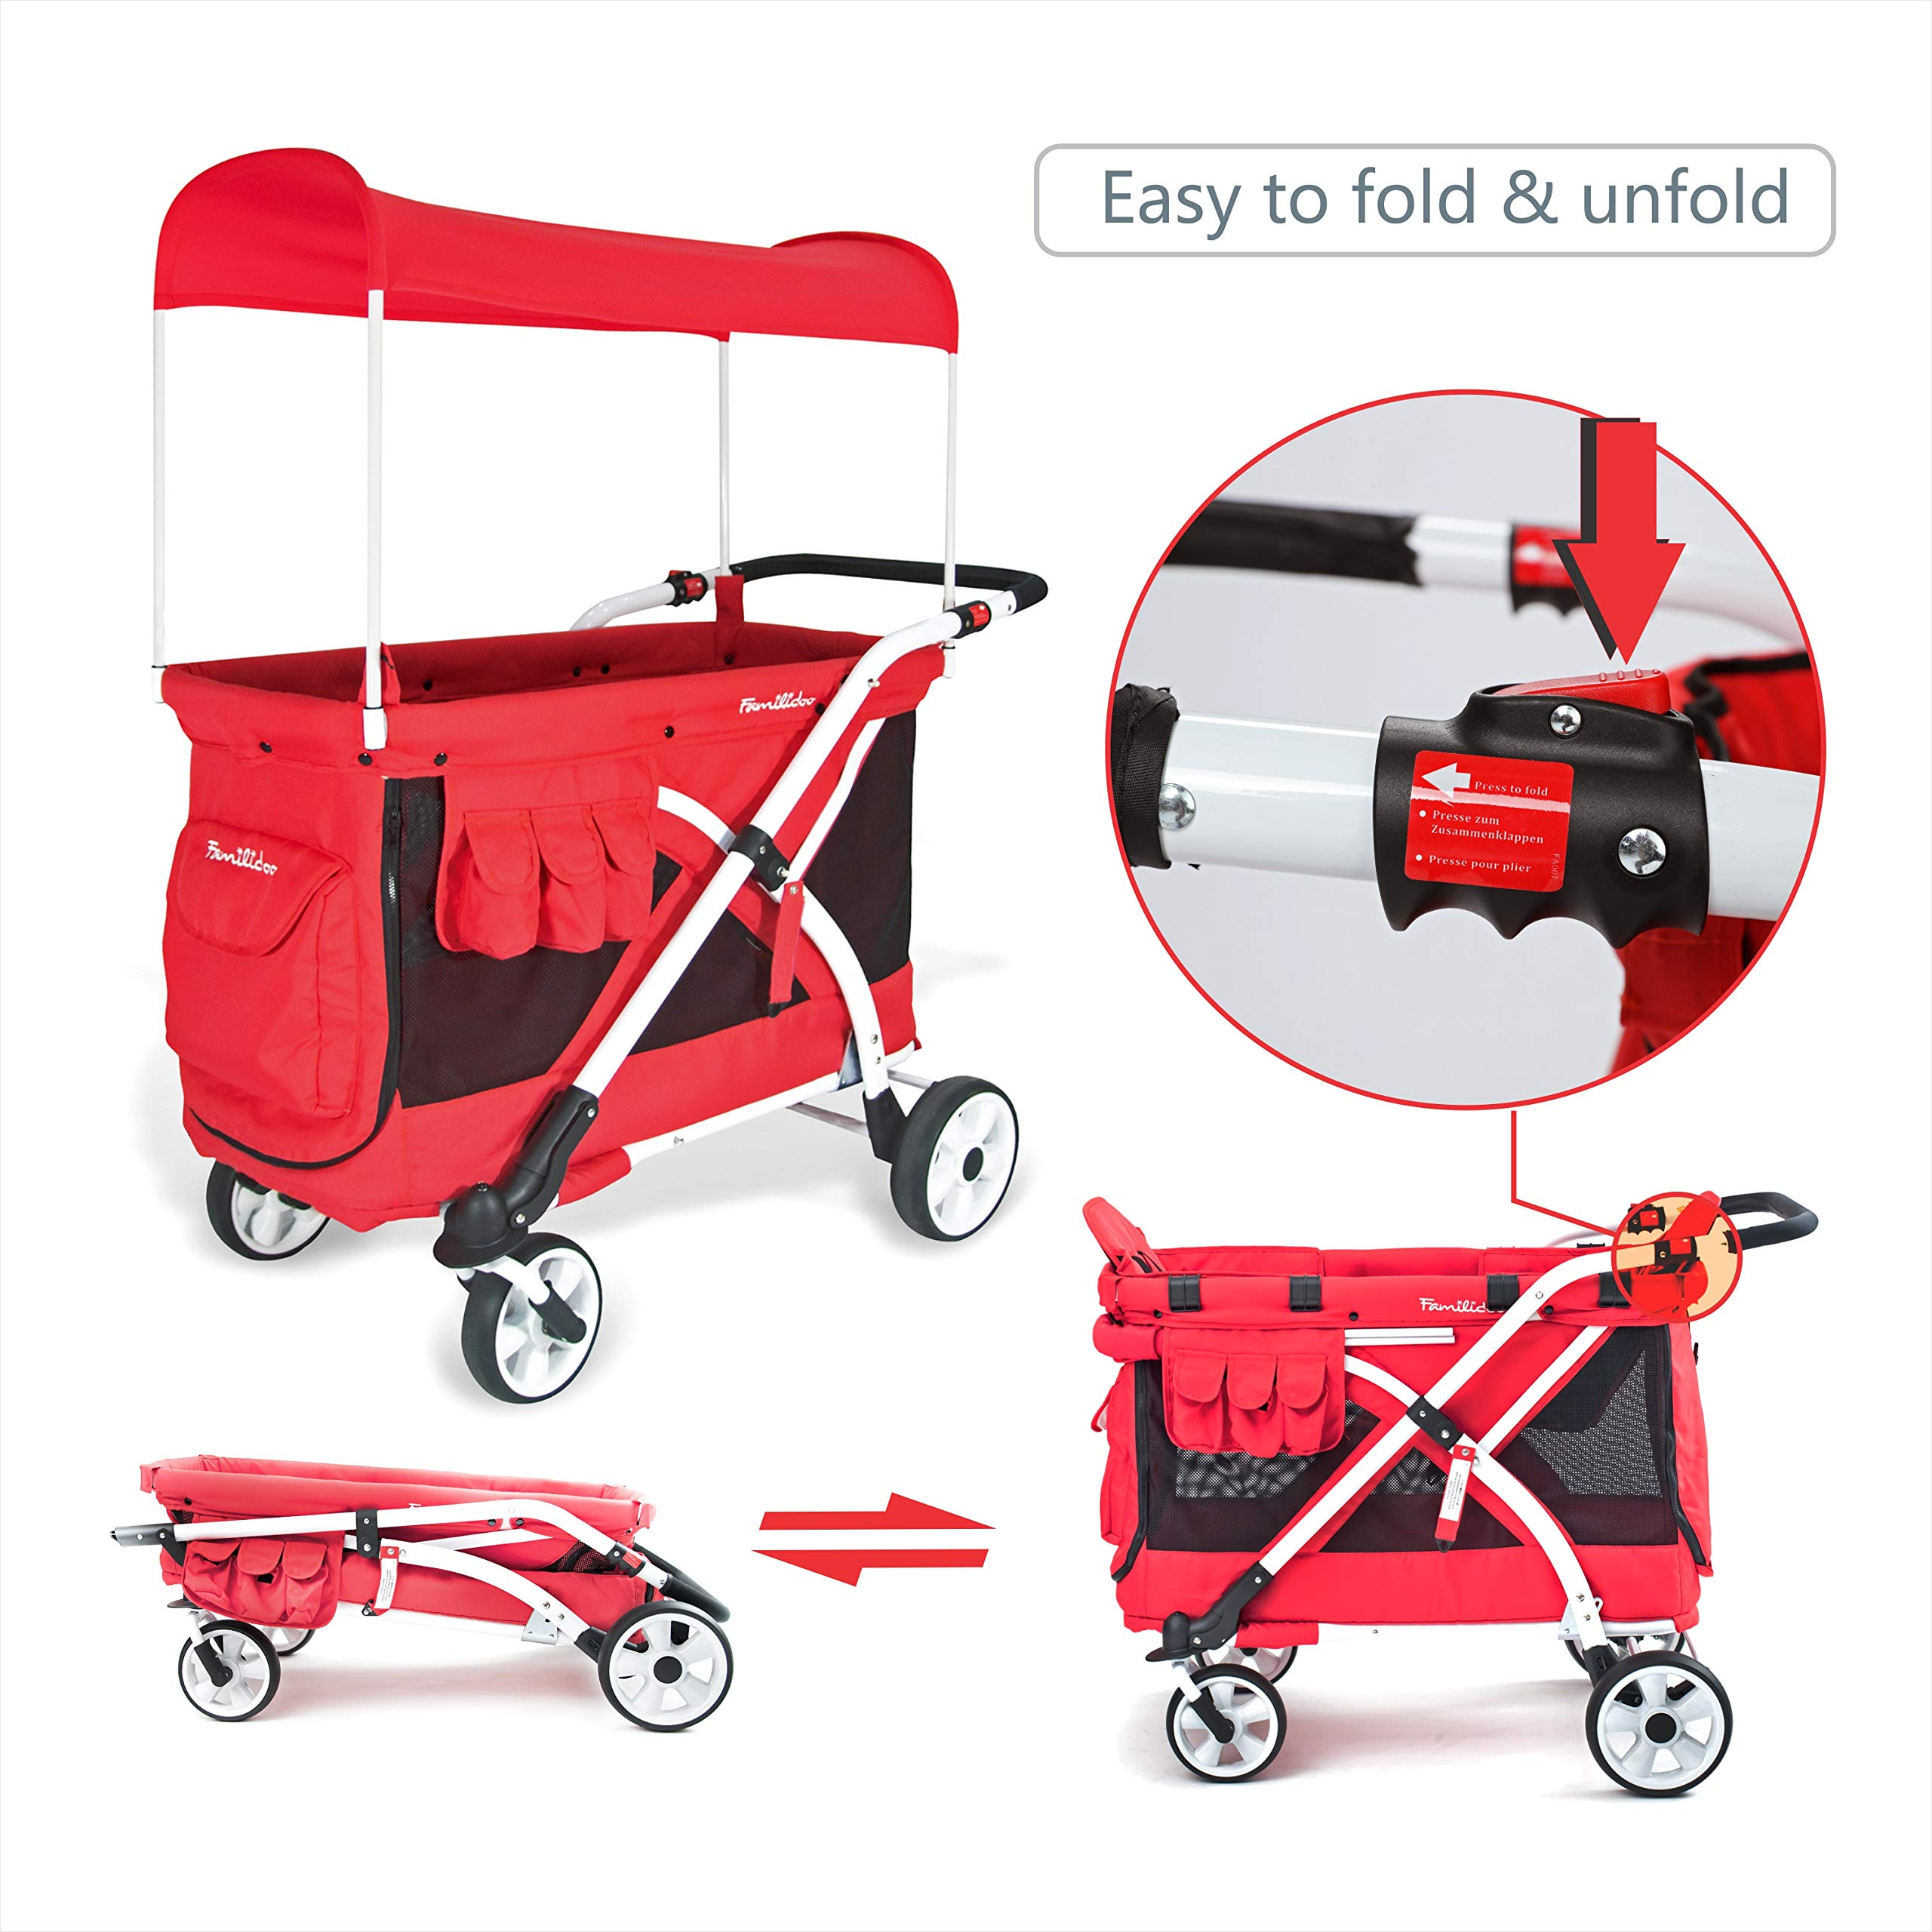 Familidoo Multi-Purpose 6 in 1 Large Twin Size Toddler Baby Folding Stroller Chariot Wagon, Red by FAMILIDOO (Image #9)